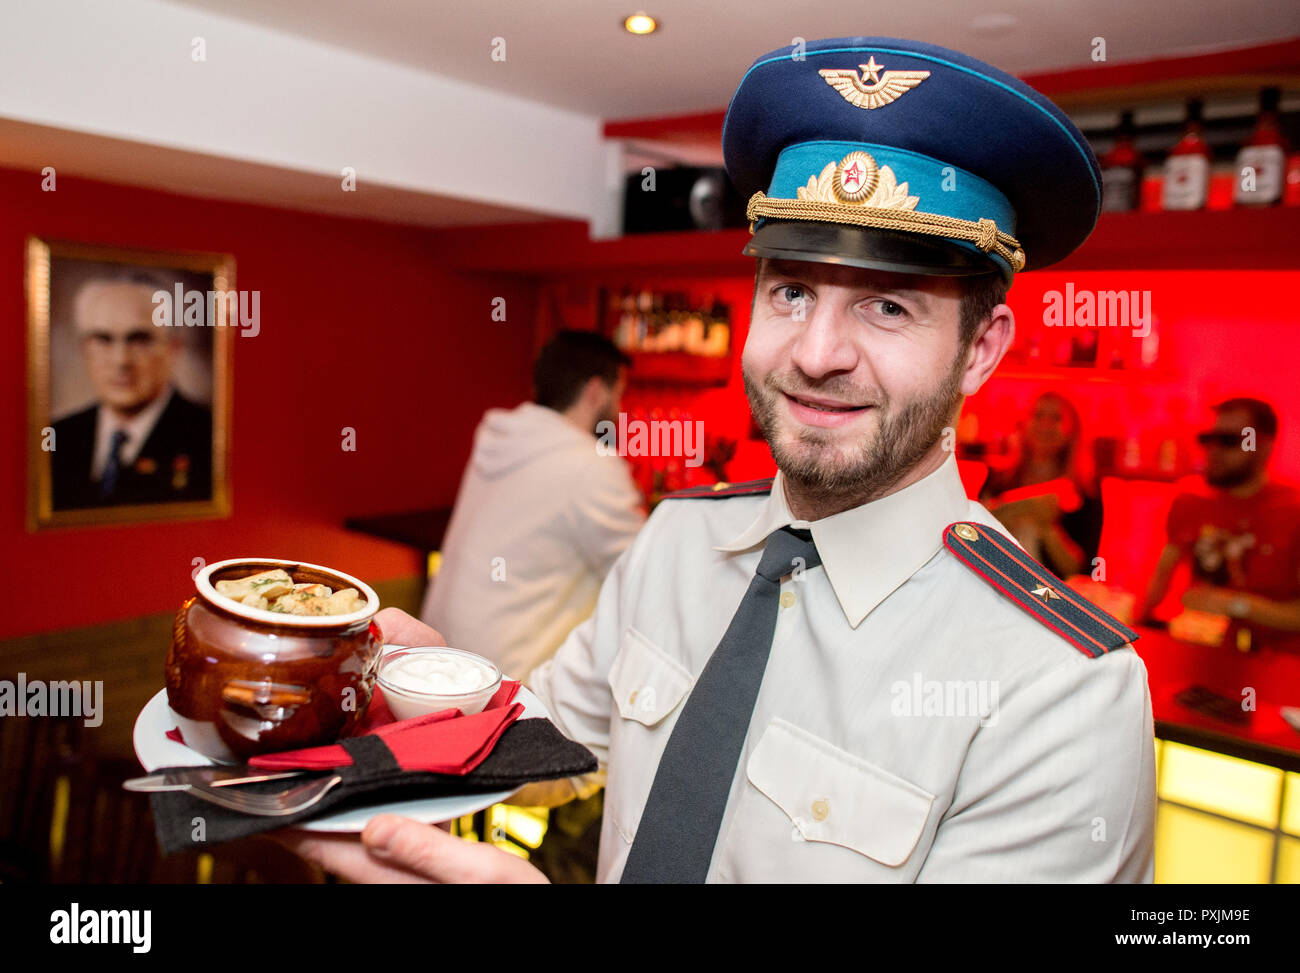 Hanover, Germany. 07th Apr, 2018. Owner Anton Djacenko served in historical KGB uniform fresh Wareniki 'Ukraina', dumplings with potato filling, in the KGB bar. With many Soviet relics, the bar in the city centre of Hanover is reminiscent of the former USSR. Credit: Hauke-Christian Dittrich/dpa/Alamy Live News - Stock Image